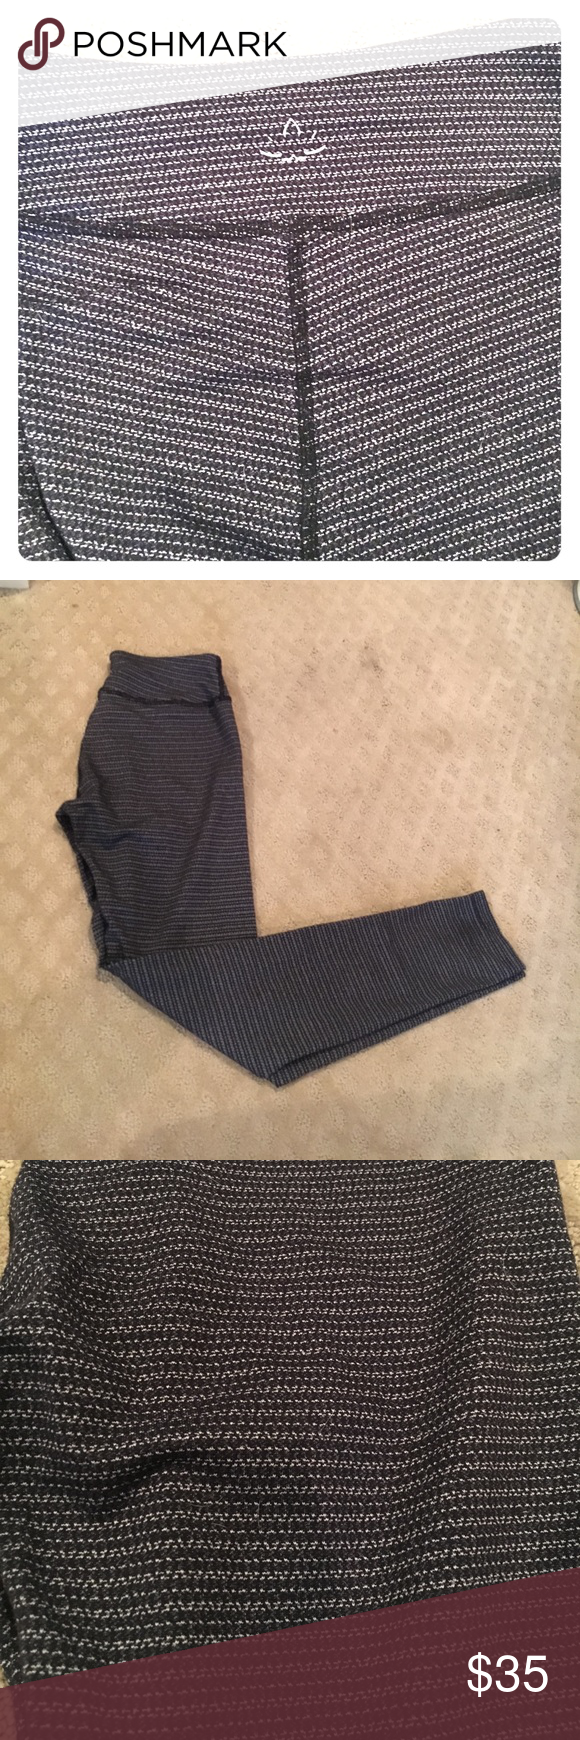 Beyond Yoga Leggings Beyond yoga's static striped pants. Light worn and in perfect condition. Softest / most comfortable pants ever! Beyond Yoga Pants Leggings